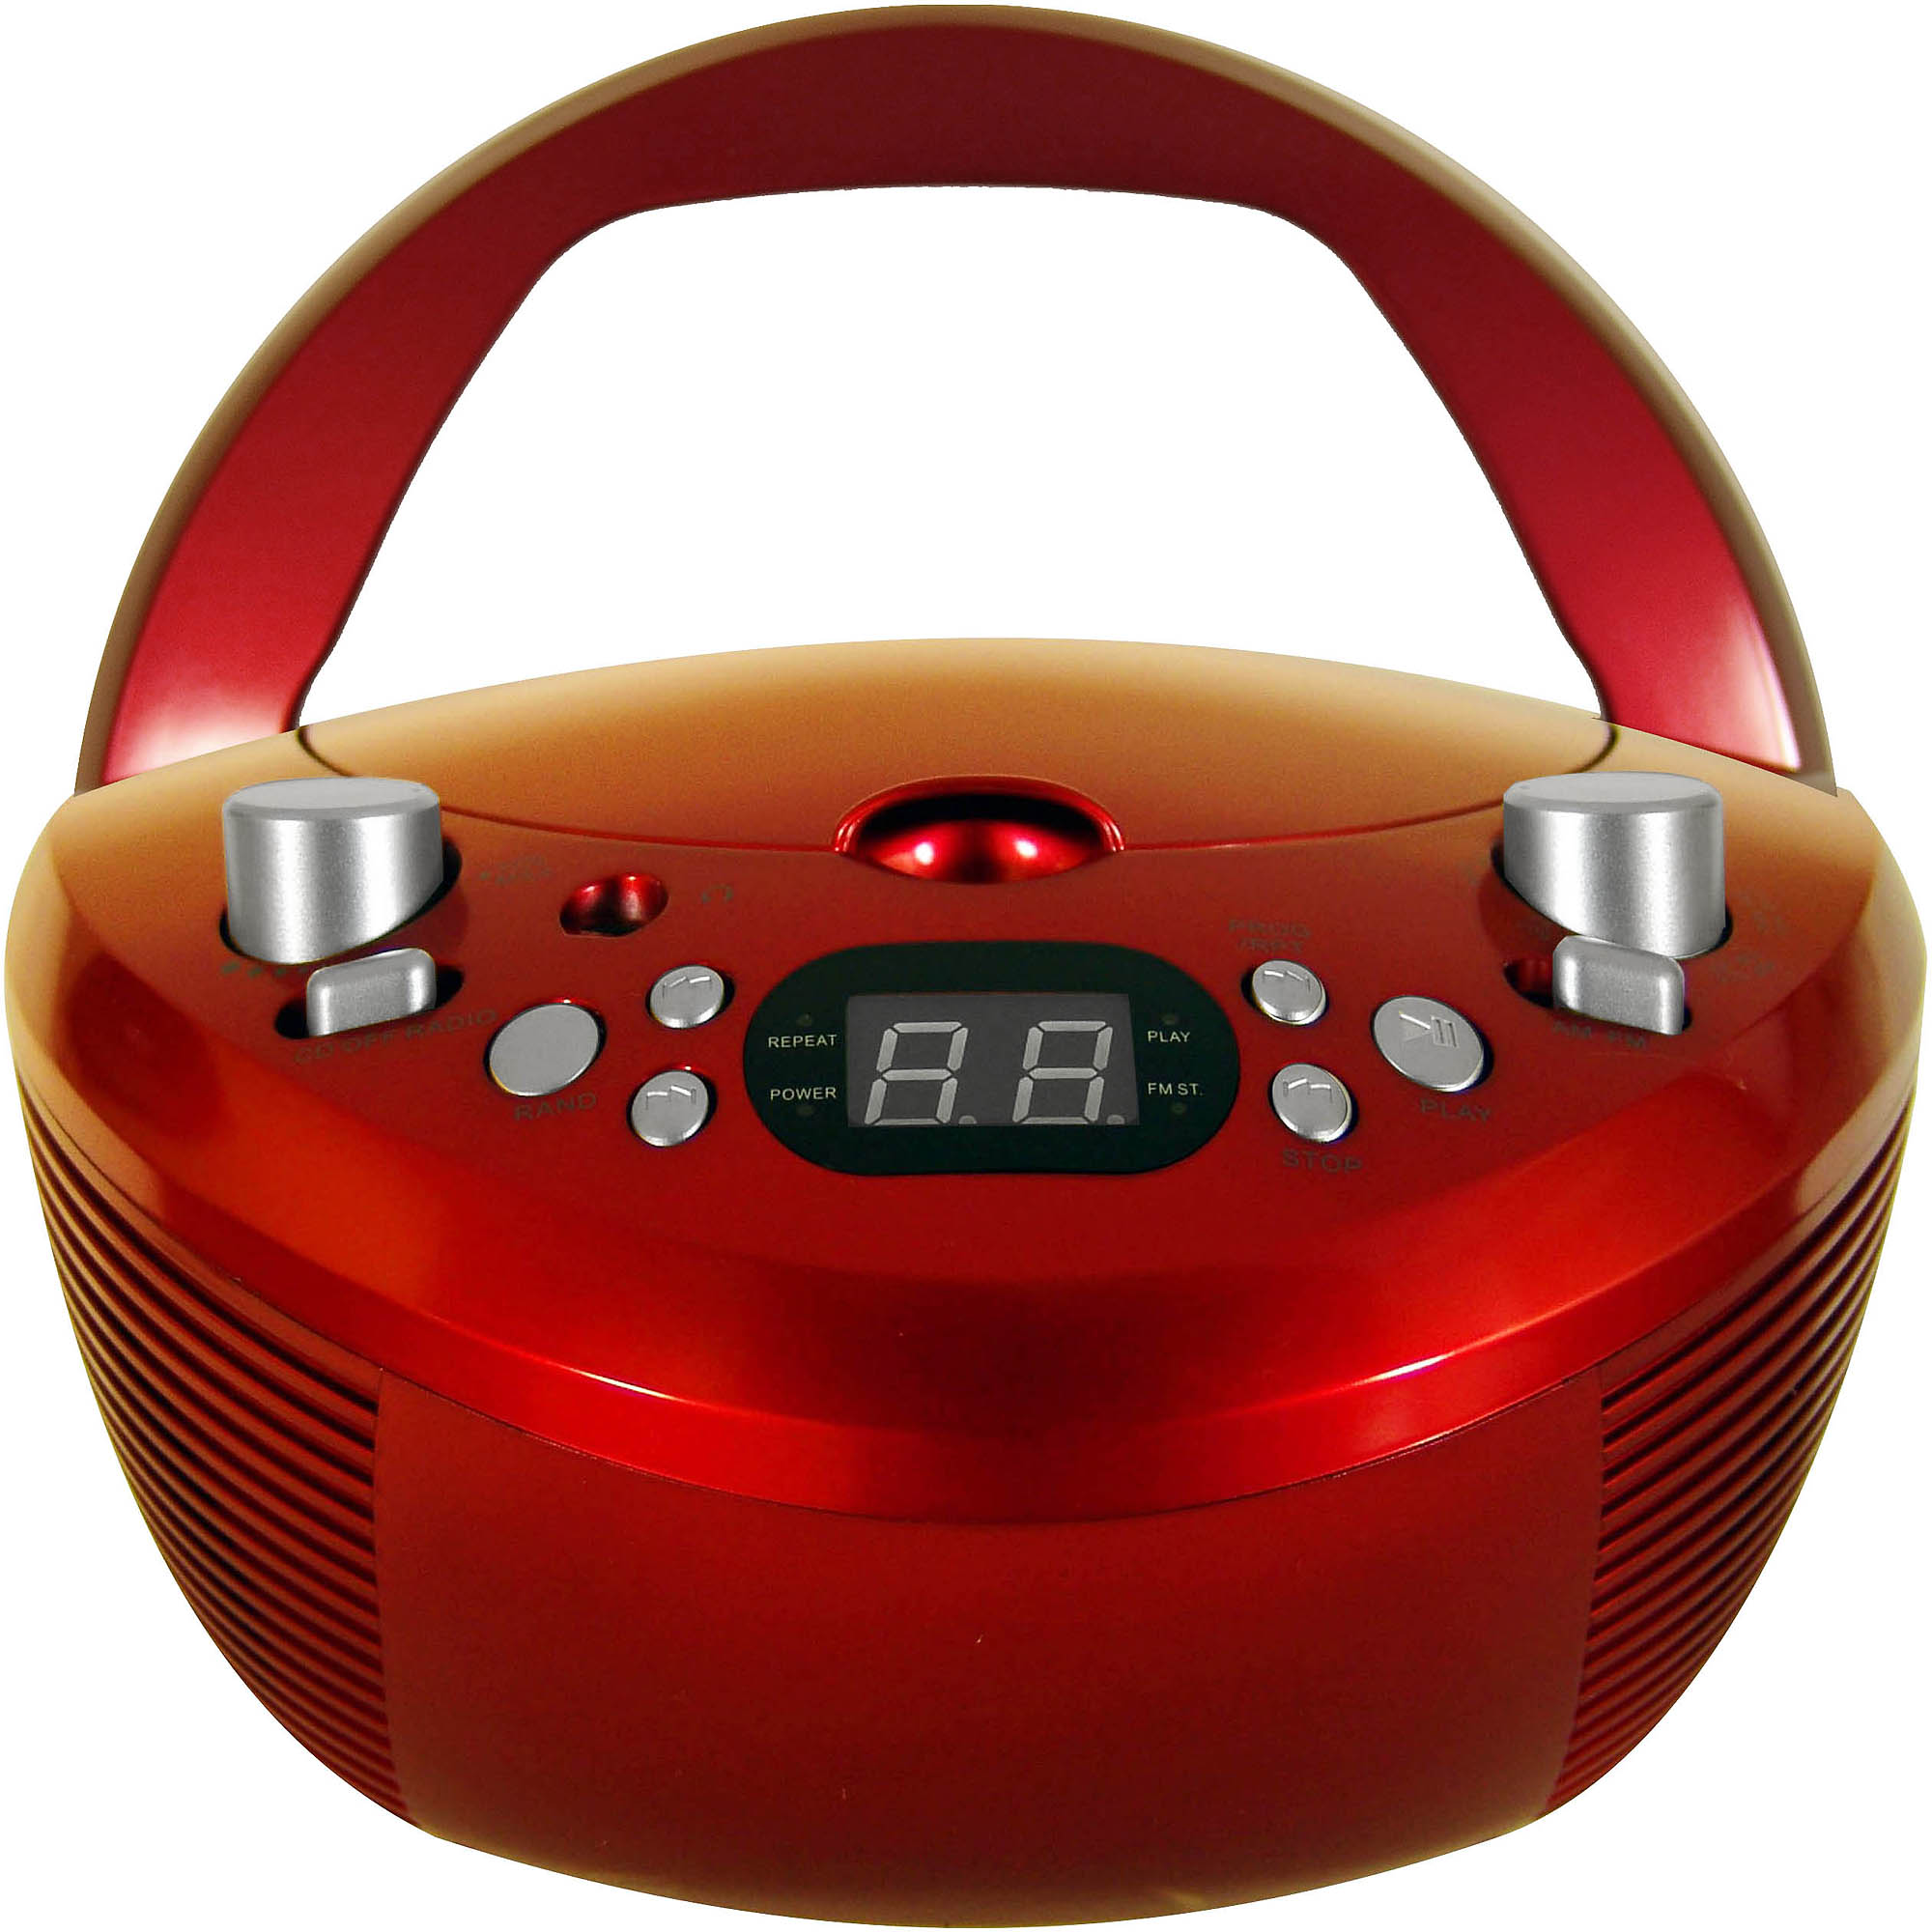 Coby CD Player with AM/FM Tuner,CX-CD251 Red